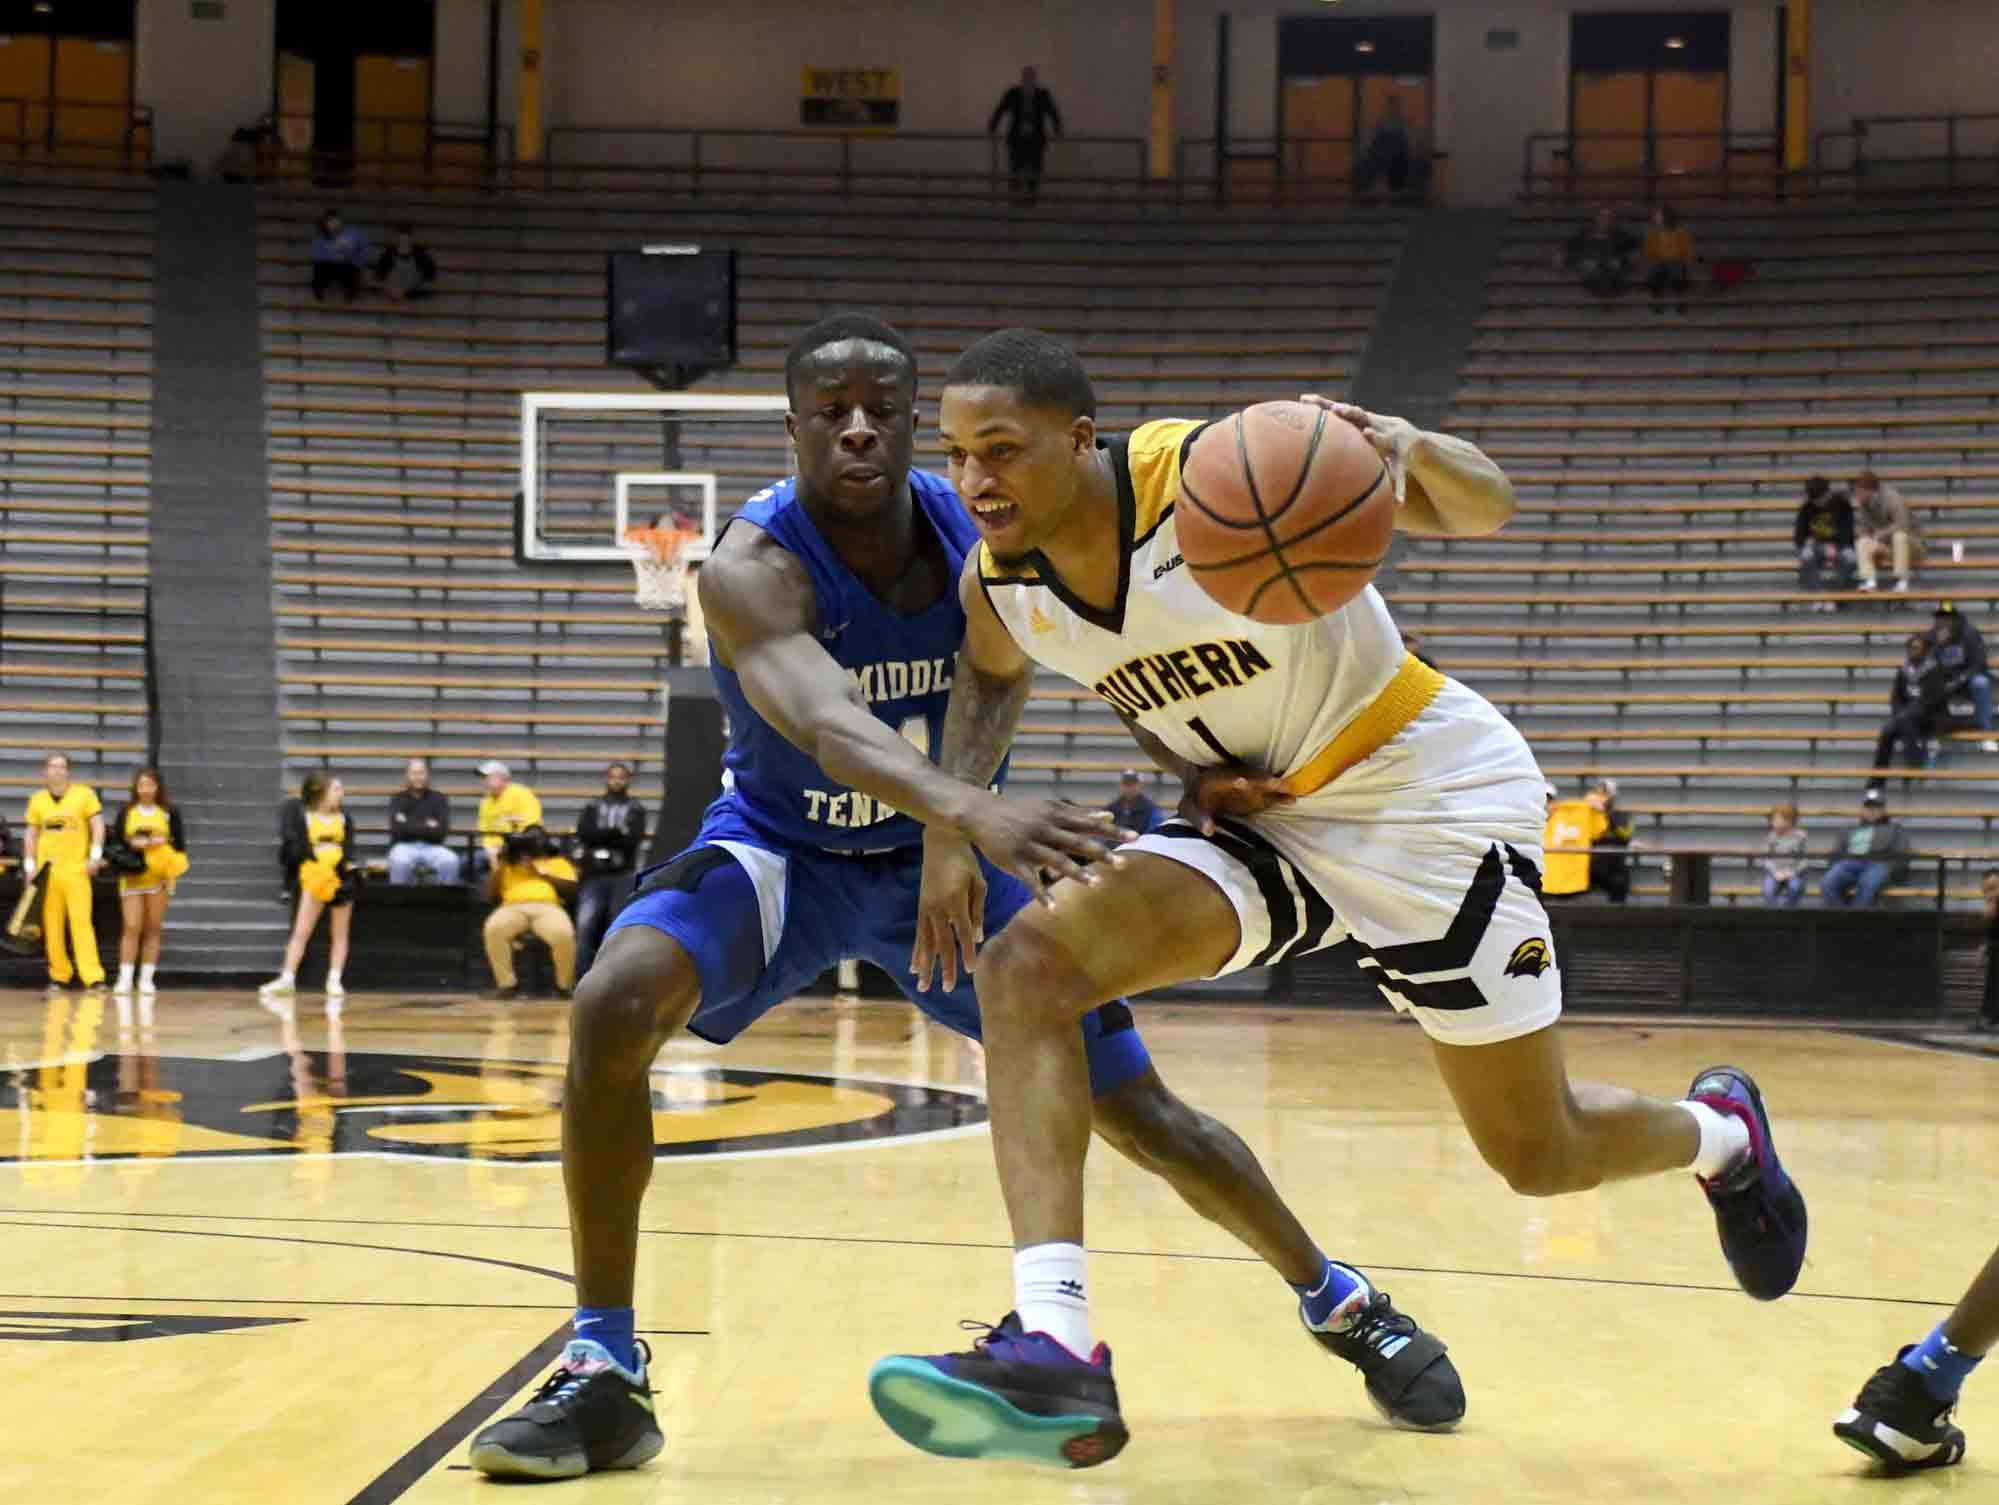 Southern Miss guard Cortez Edwards drives to the basket in a game against Middle Tennessee in Reed Green Coliseum on Thursday, January 10, 2019.